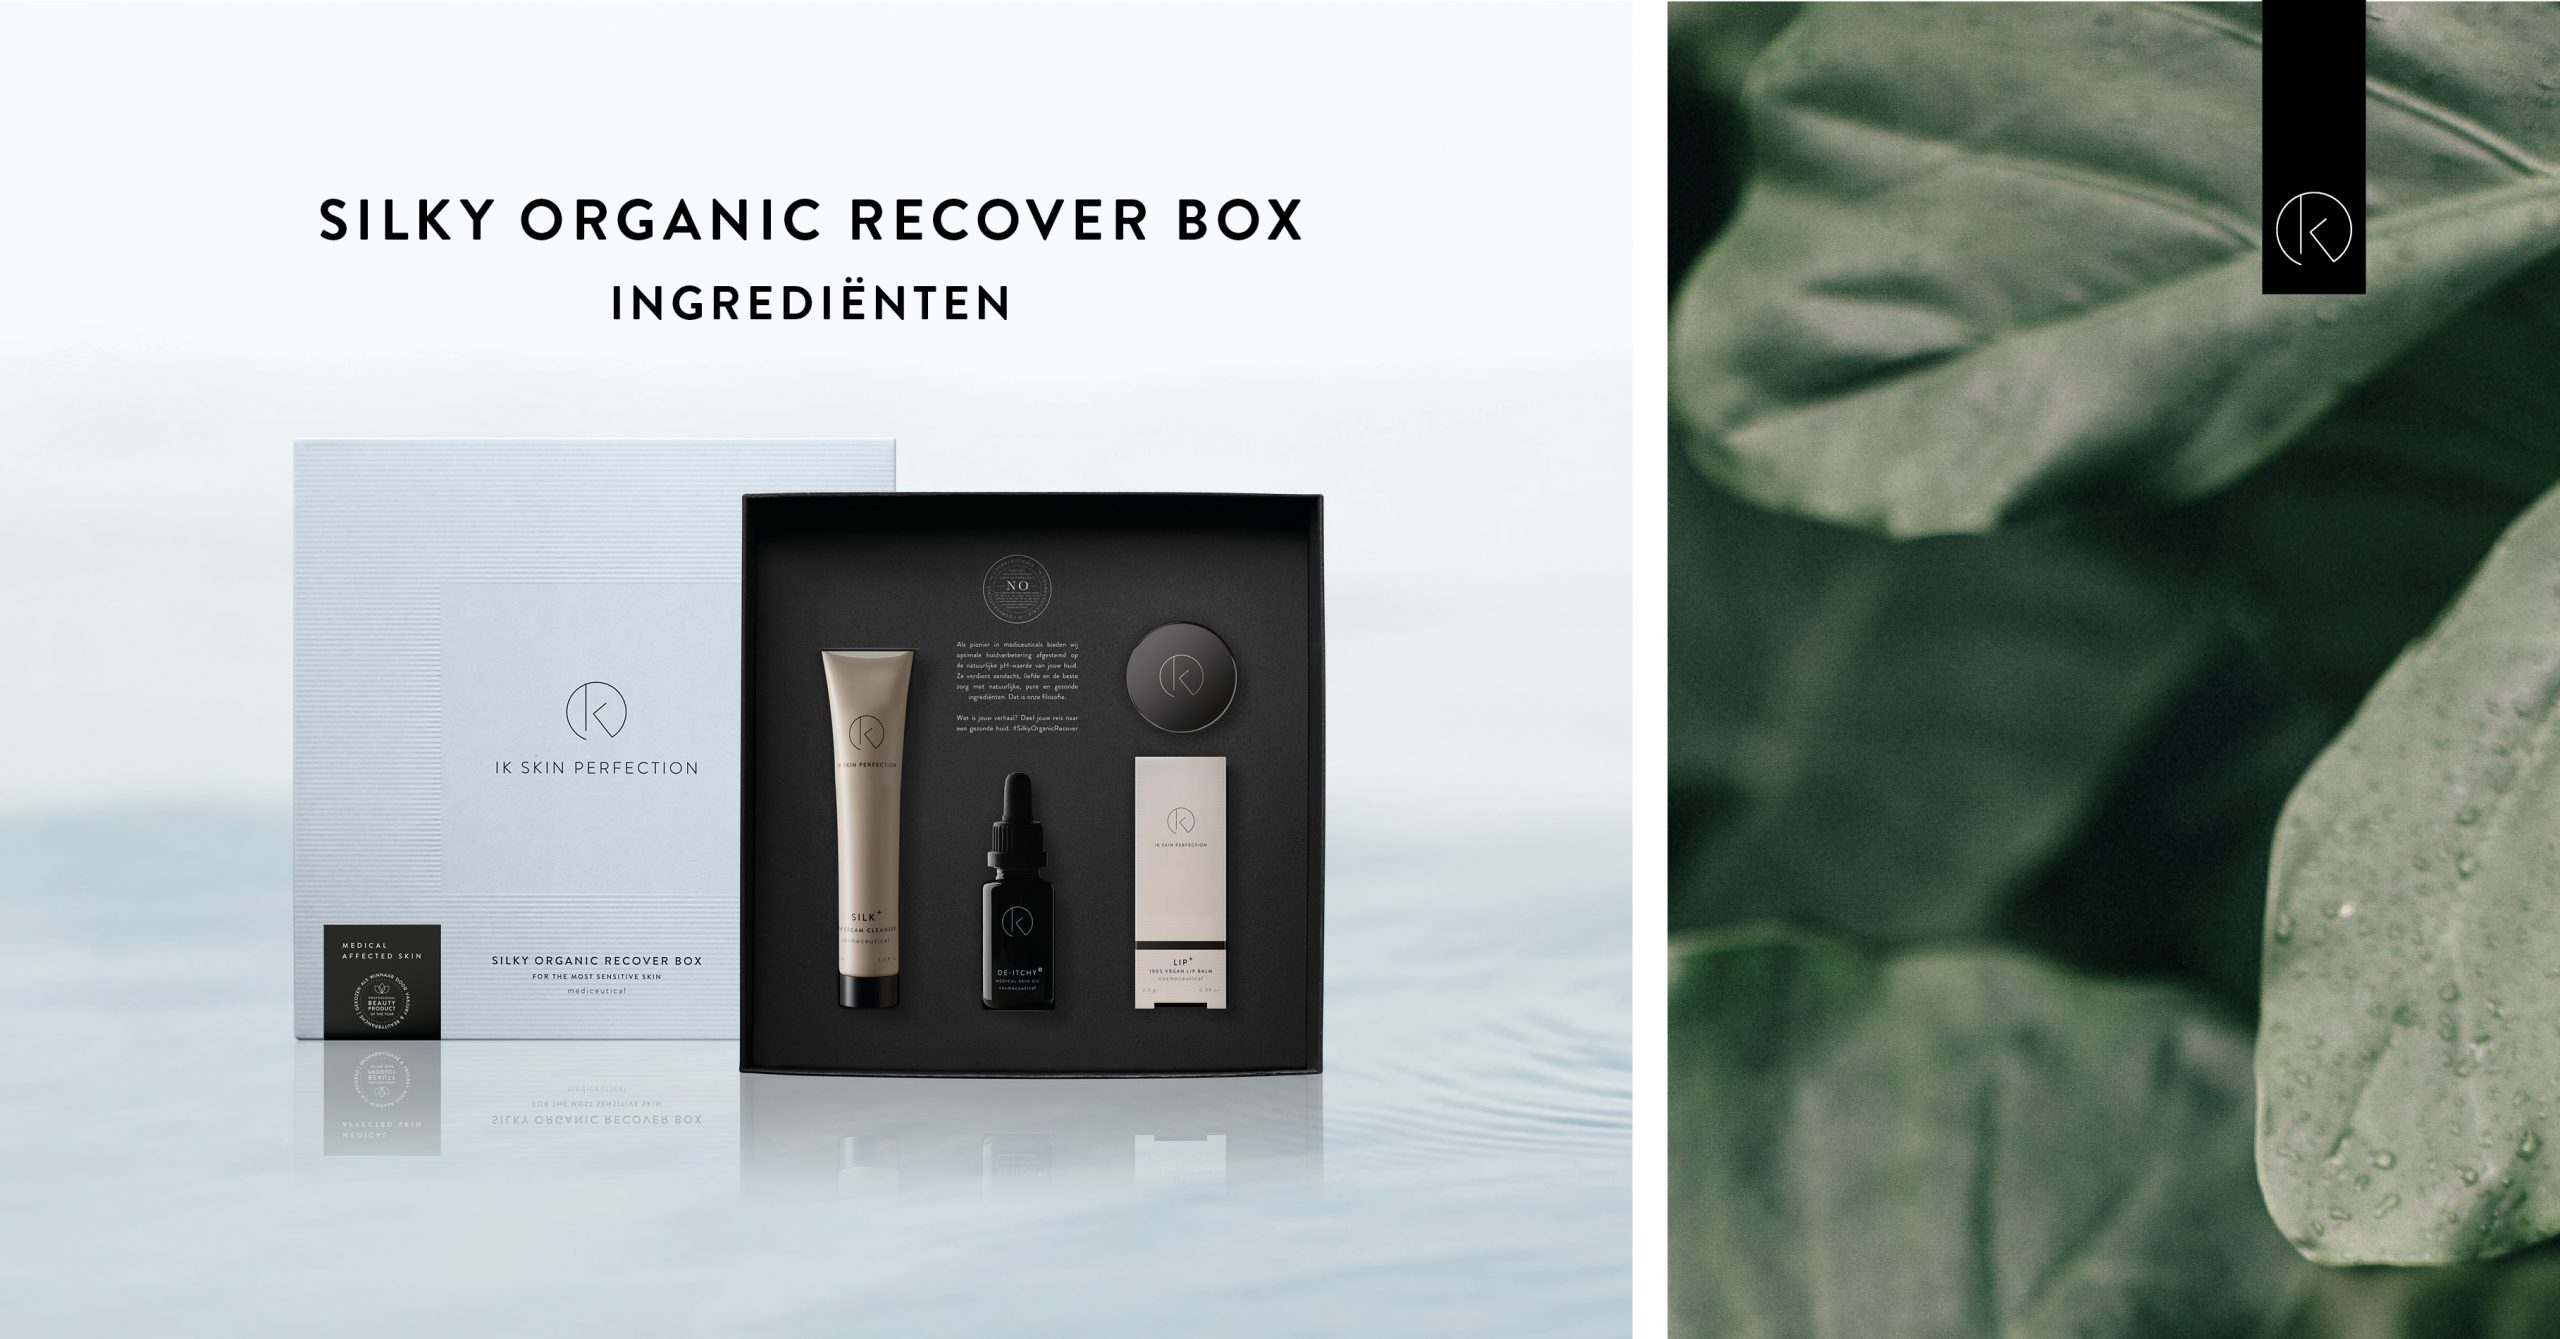 Silky Organic Recover Box by IK Skin Perfection